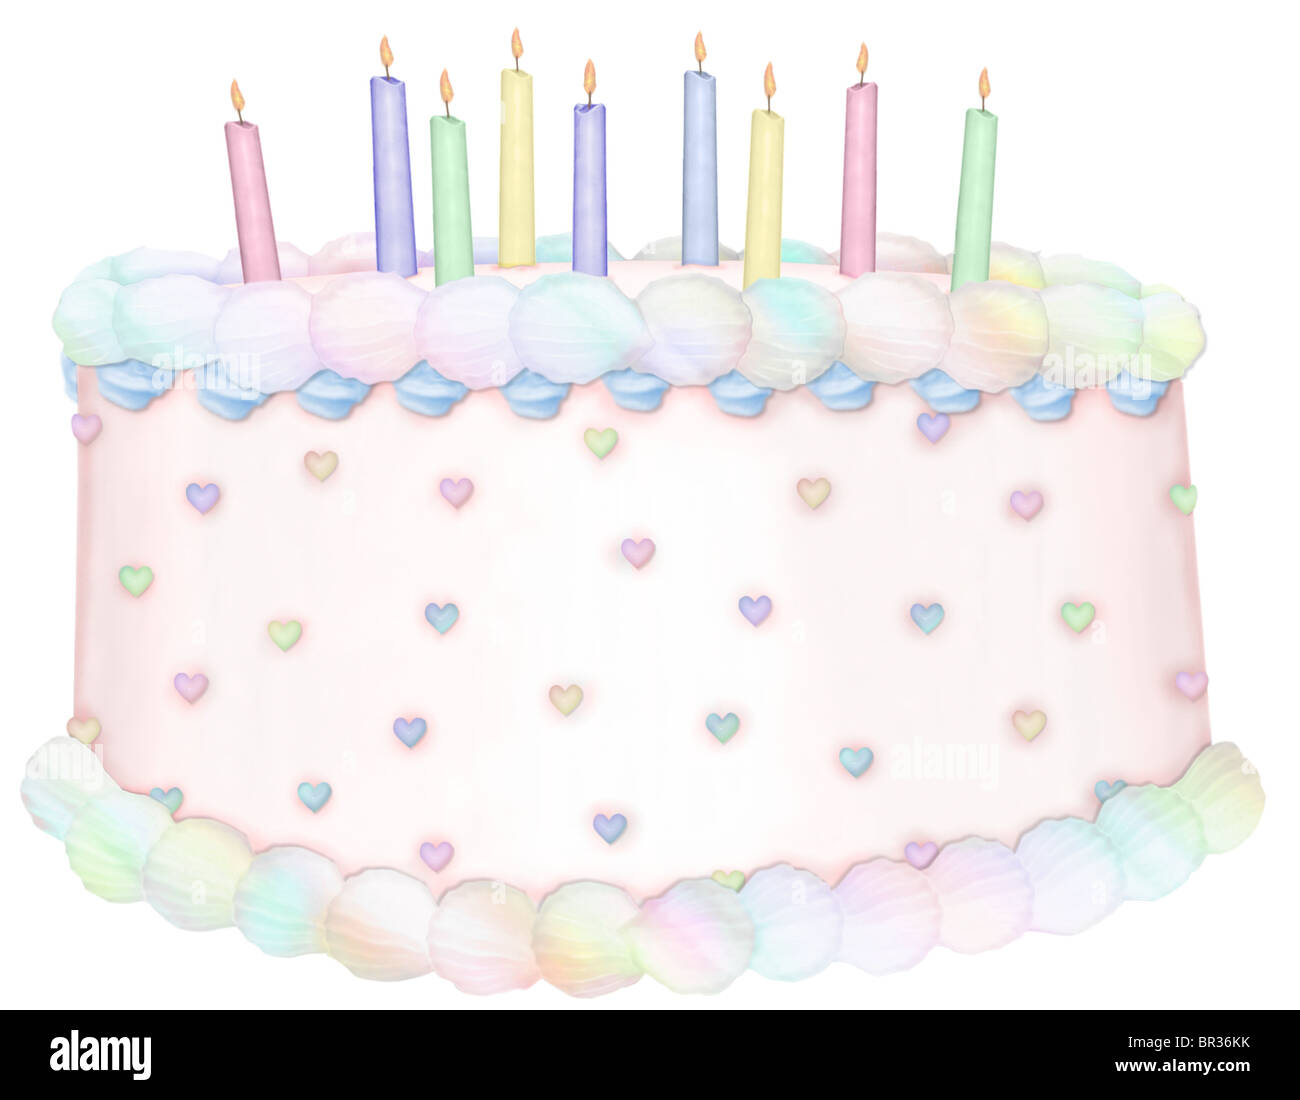 Remarkable A Pretty Birthday Cake With Nine Candles Stock Photo 31418567 Alamy Personalised Birthday Cards Veneteletsinfo